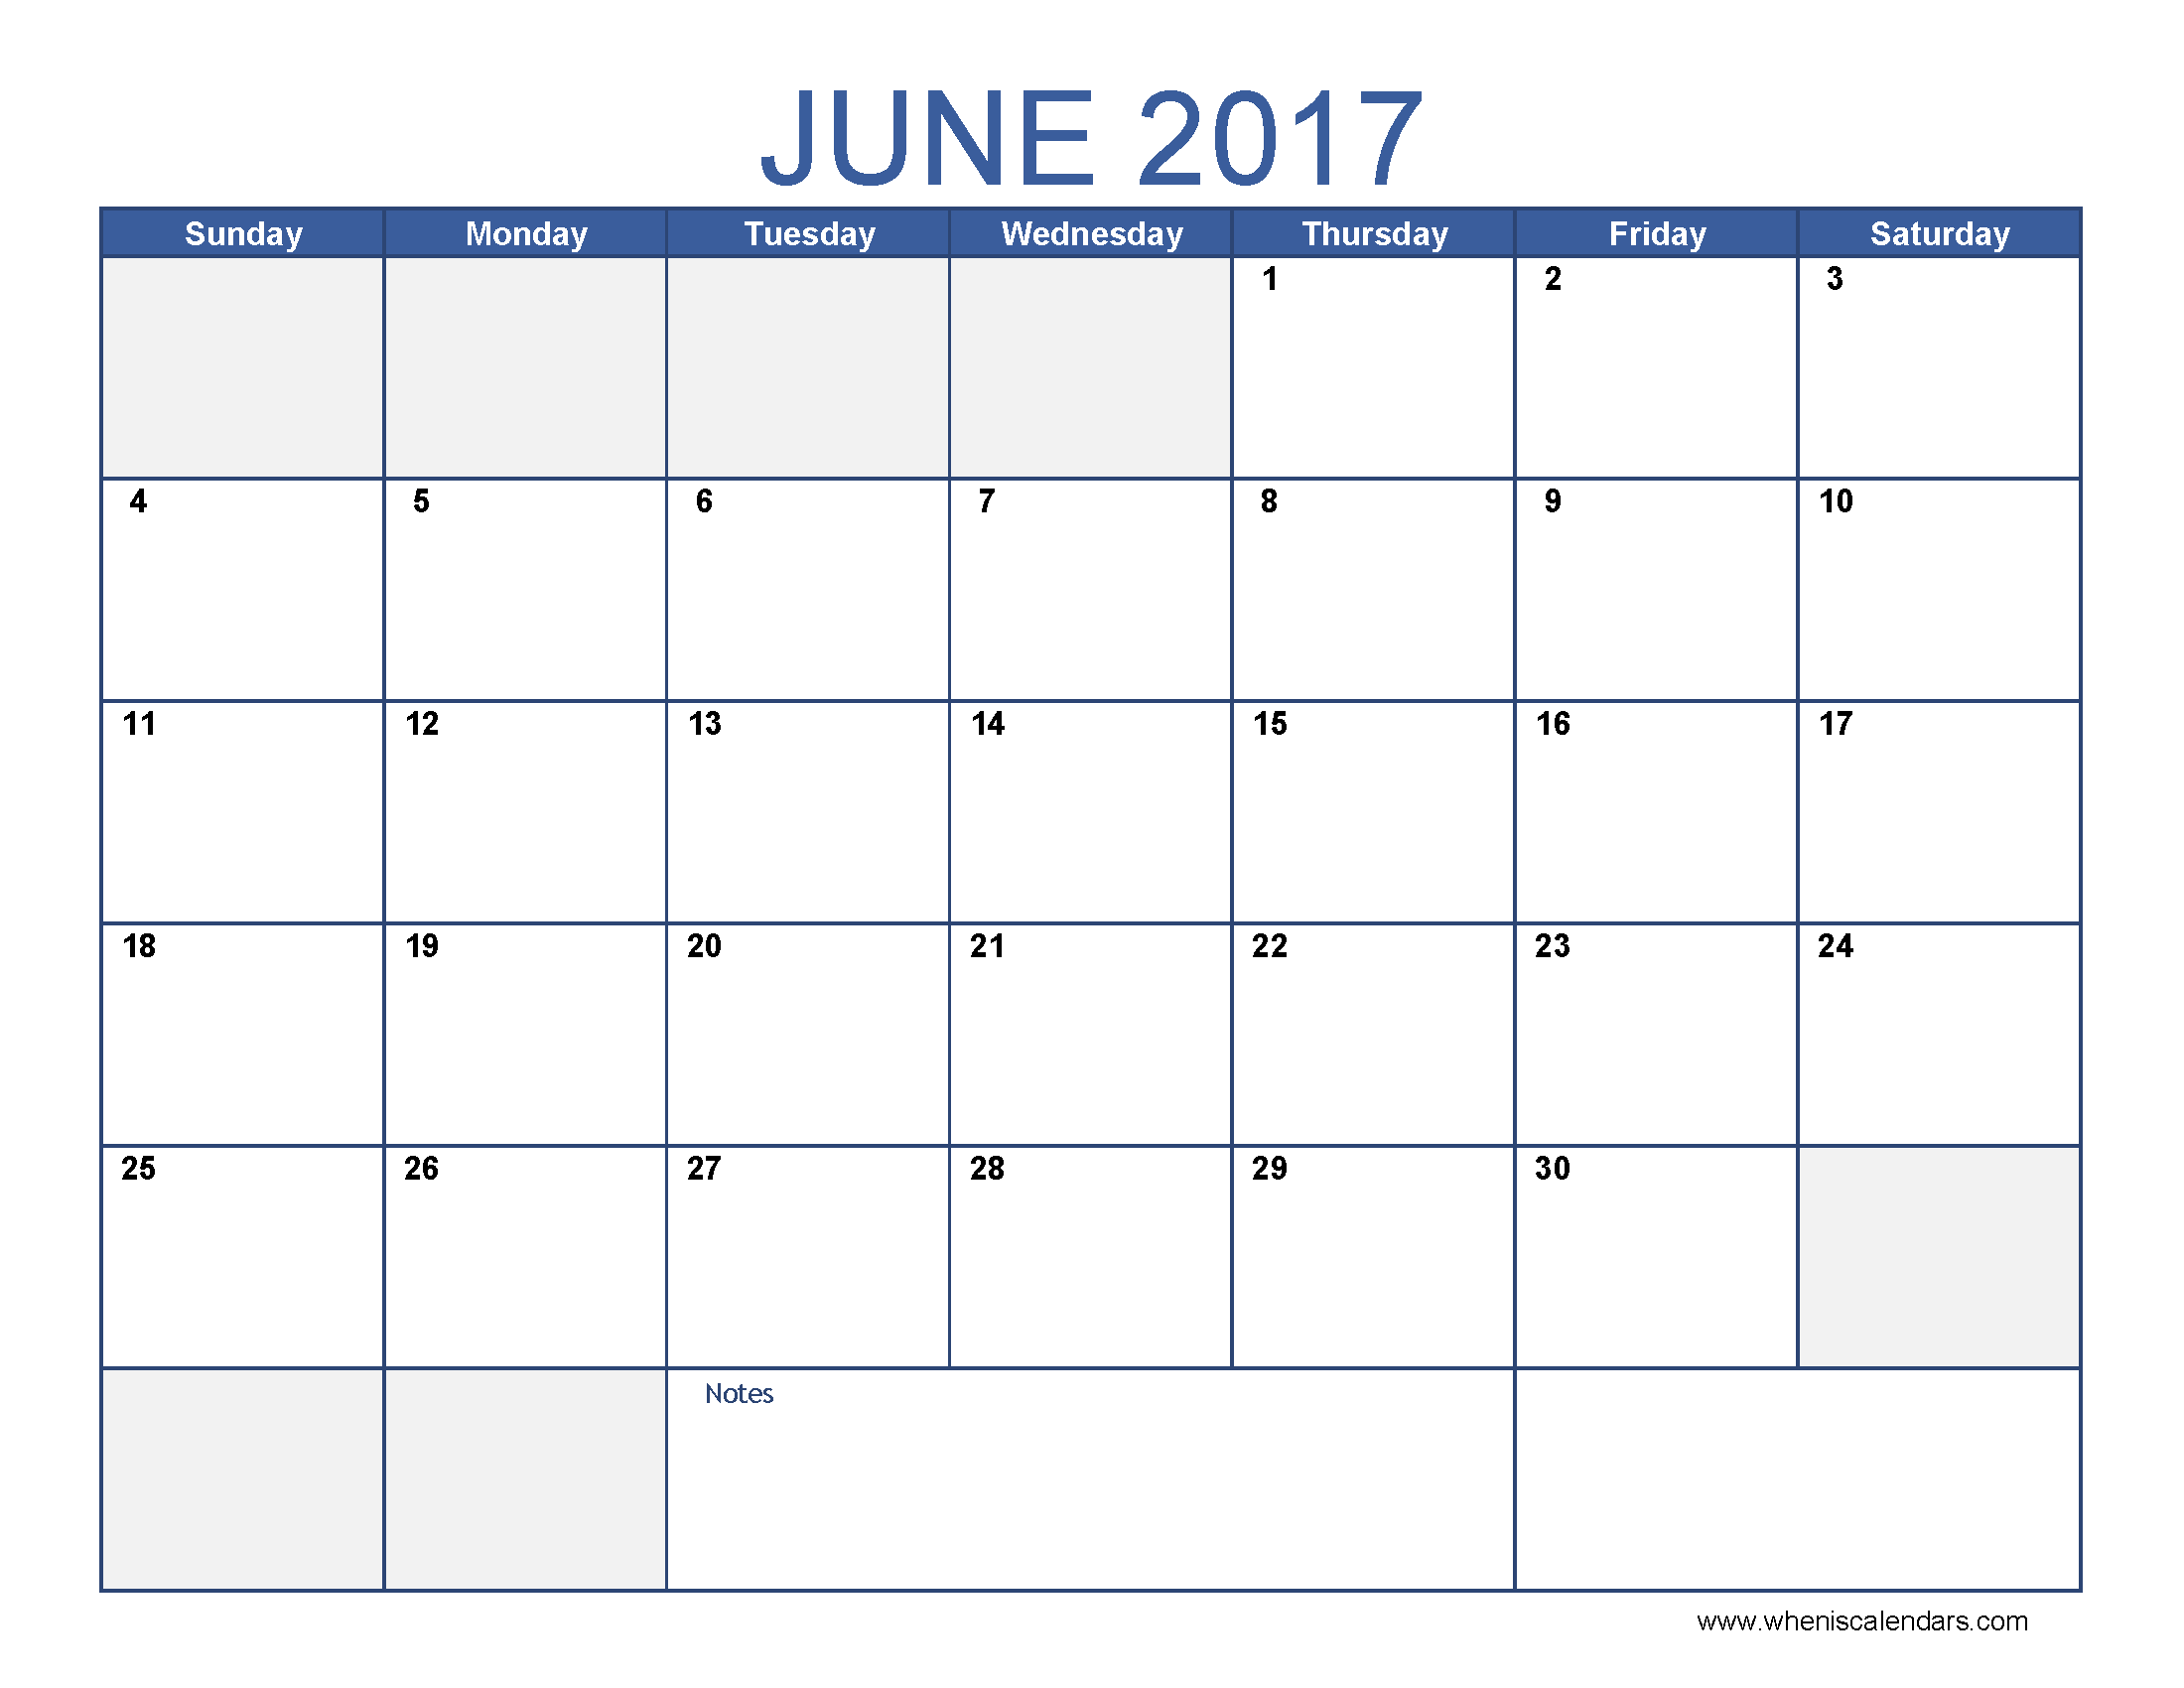 june 2017 calendar excel template